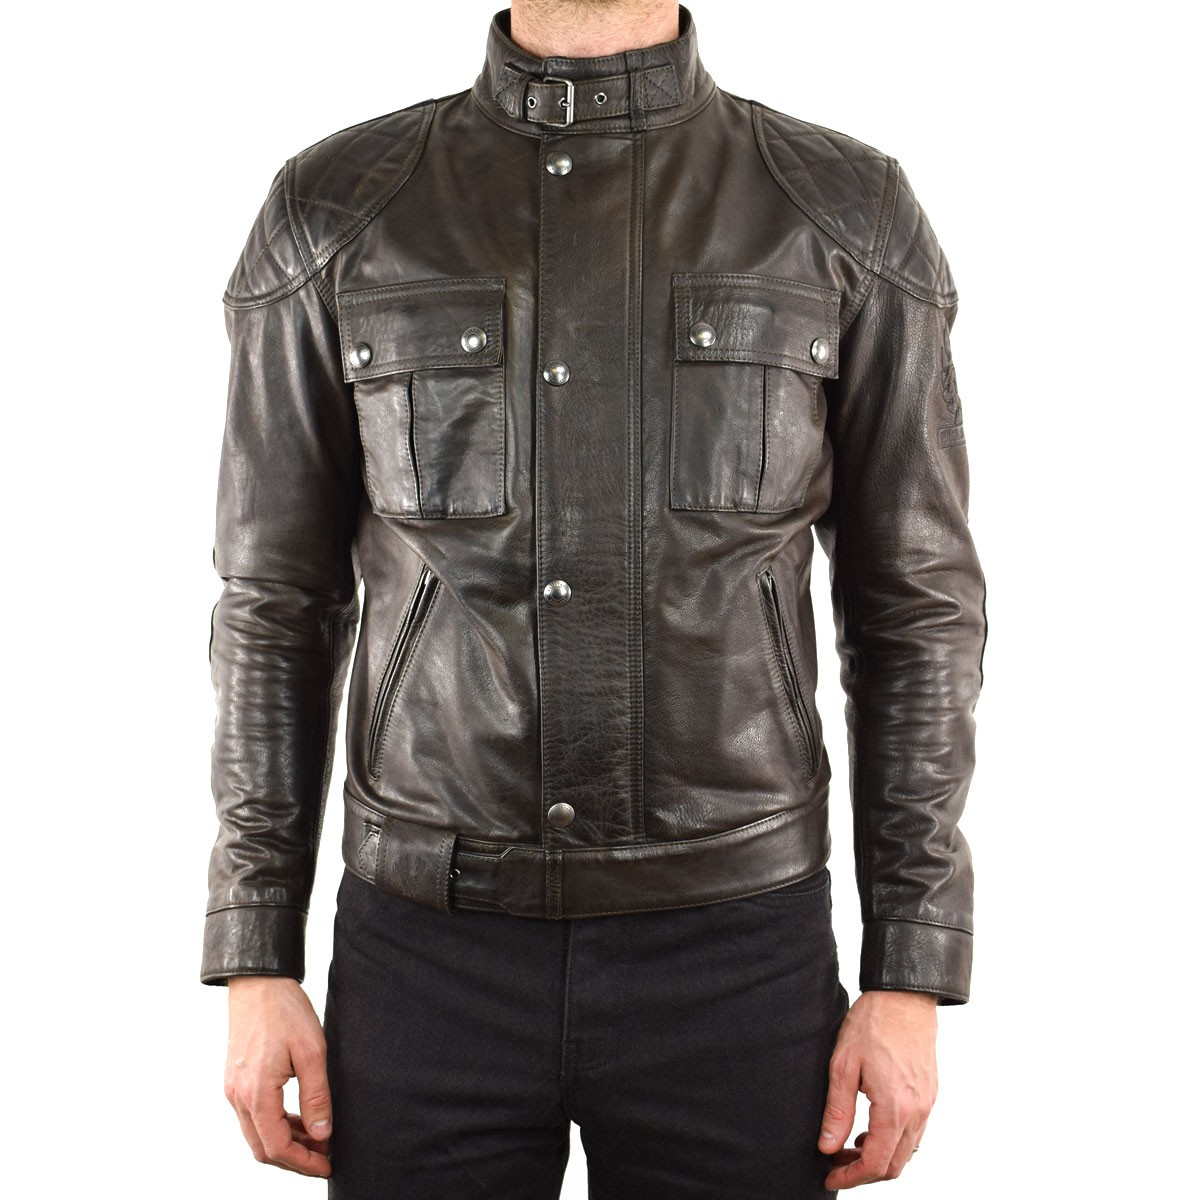 BELSTAFF BROOKLANDS MOJAVE LEATHER JACKET - BLACK BROWN FRONT ...